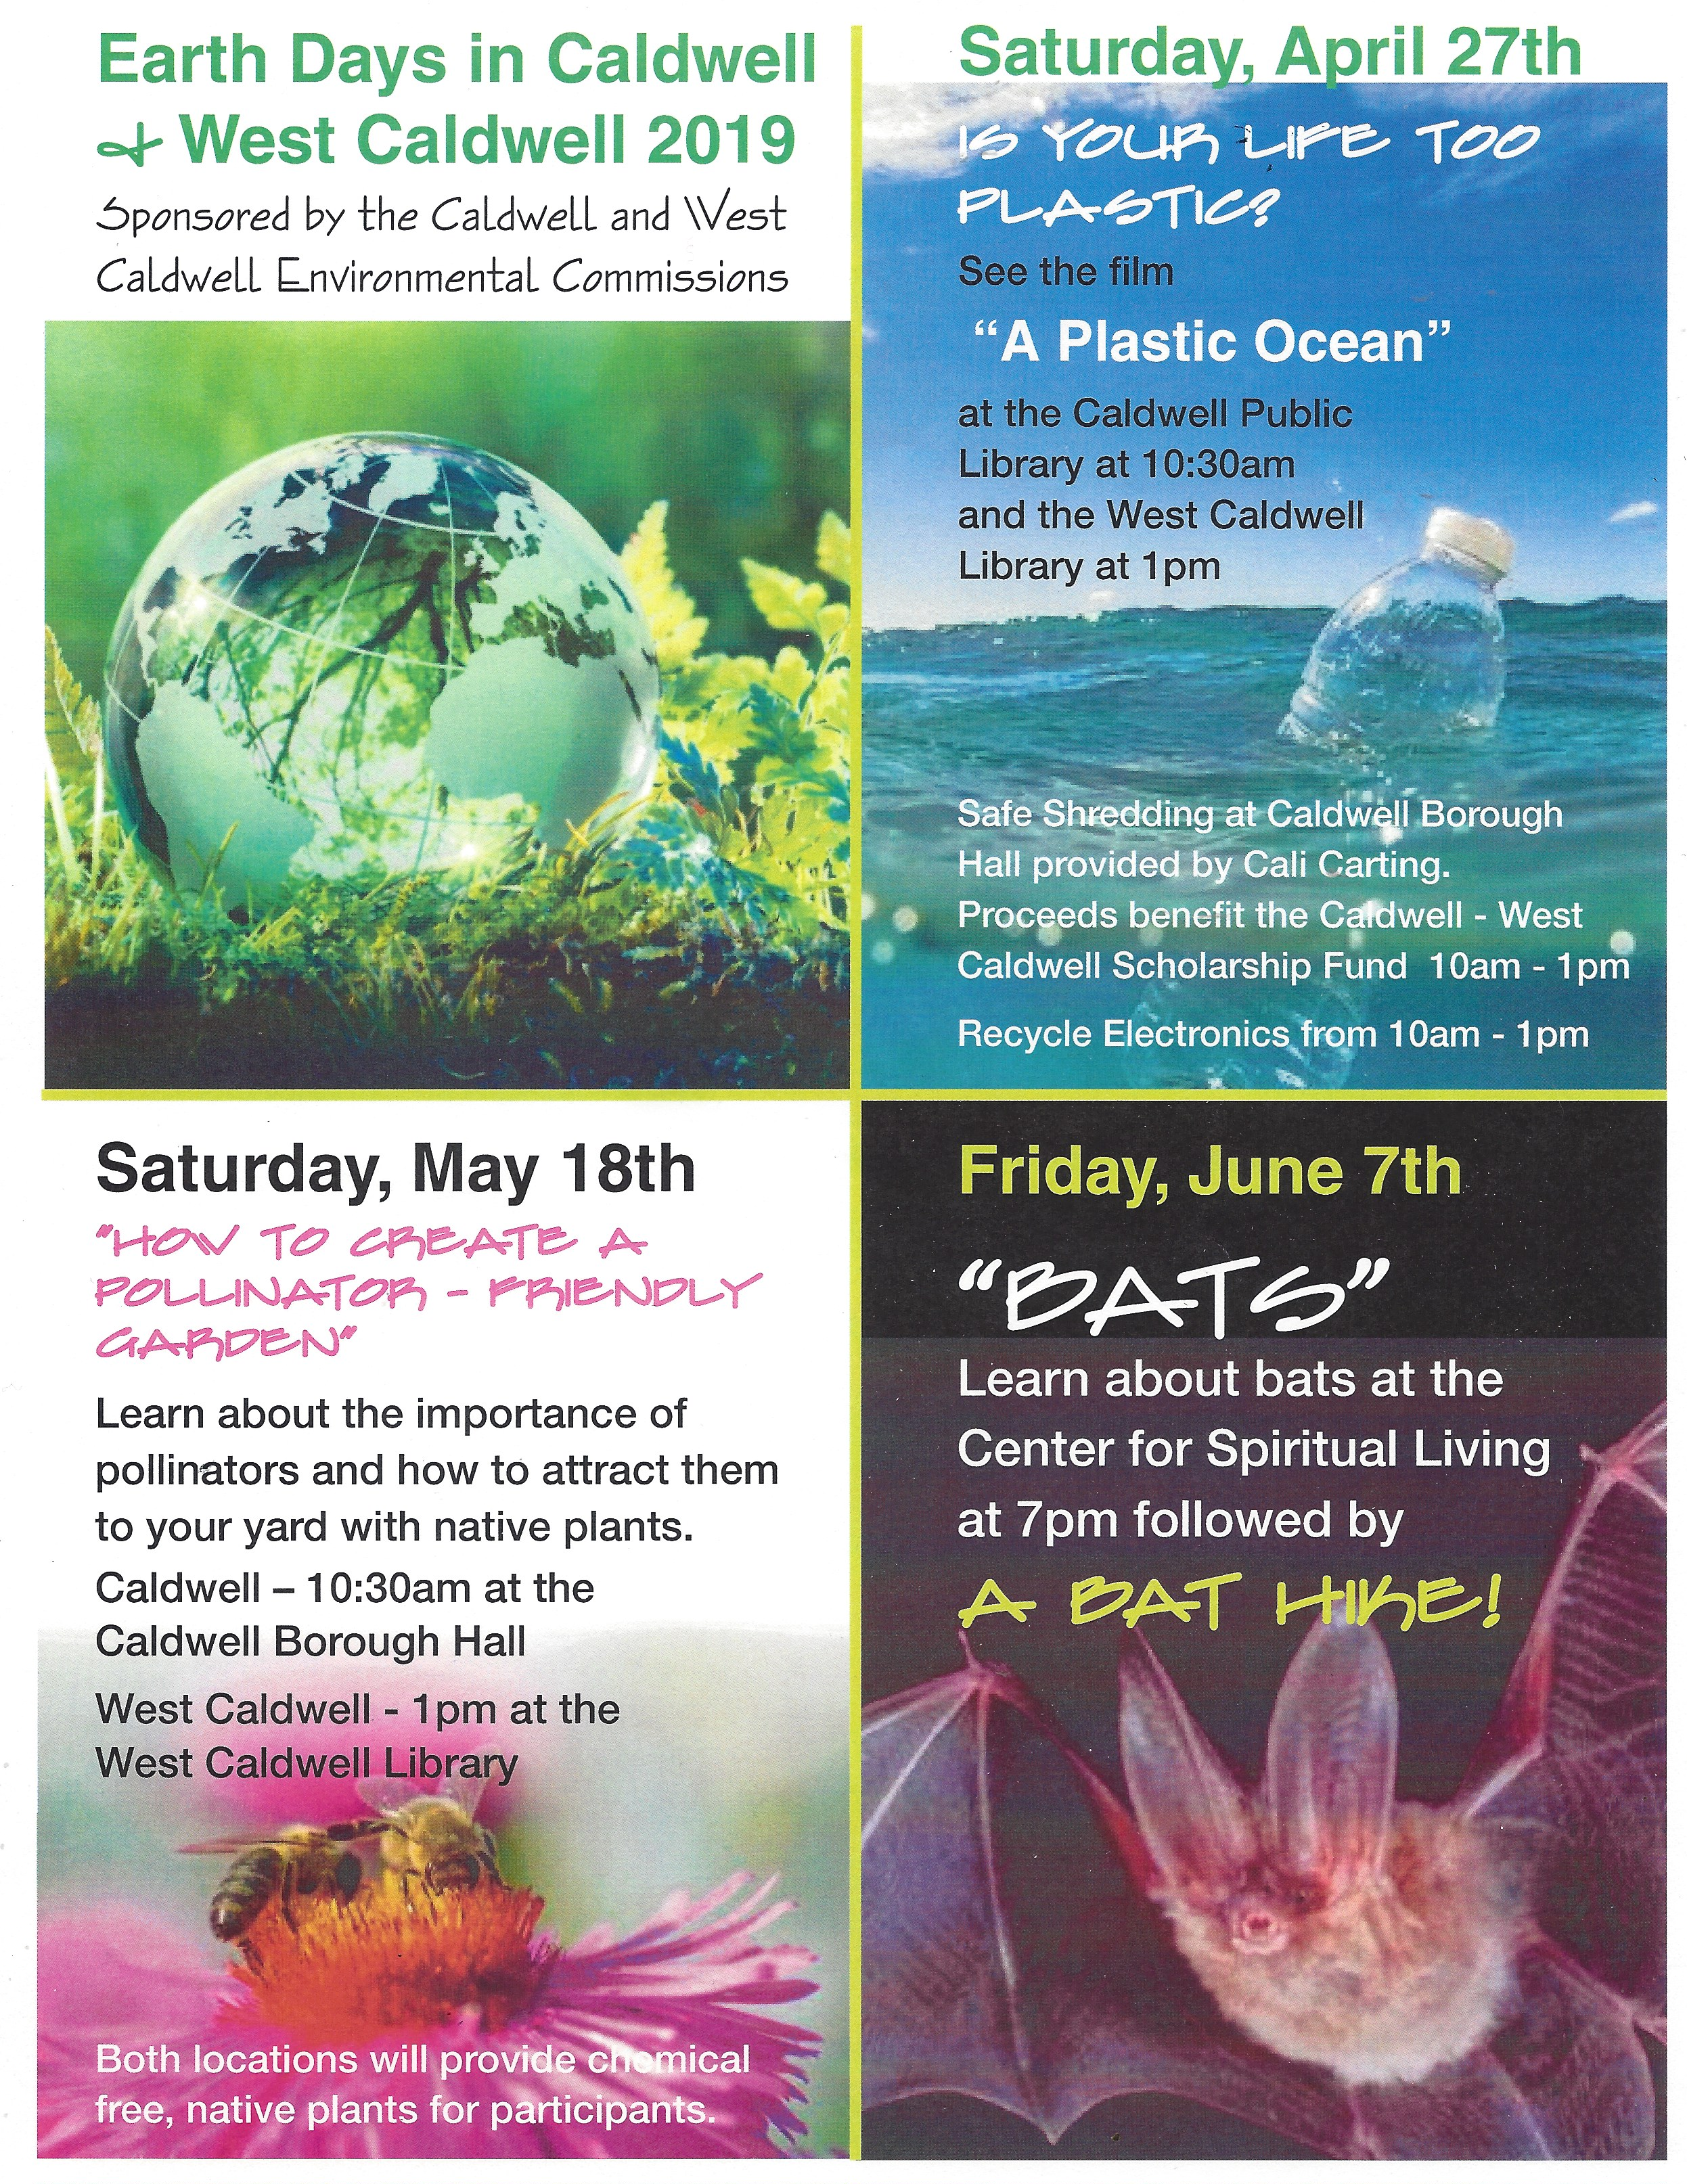 Earth Days in Caldwell & West Caldwell 2019